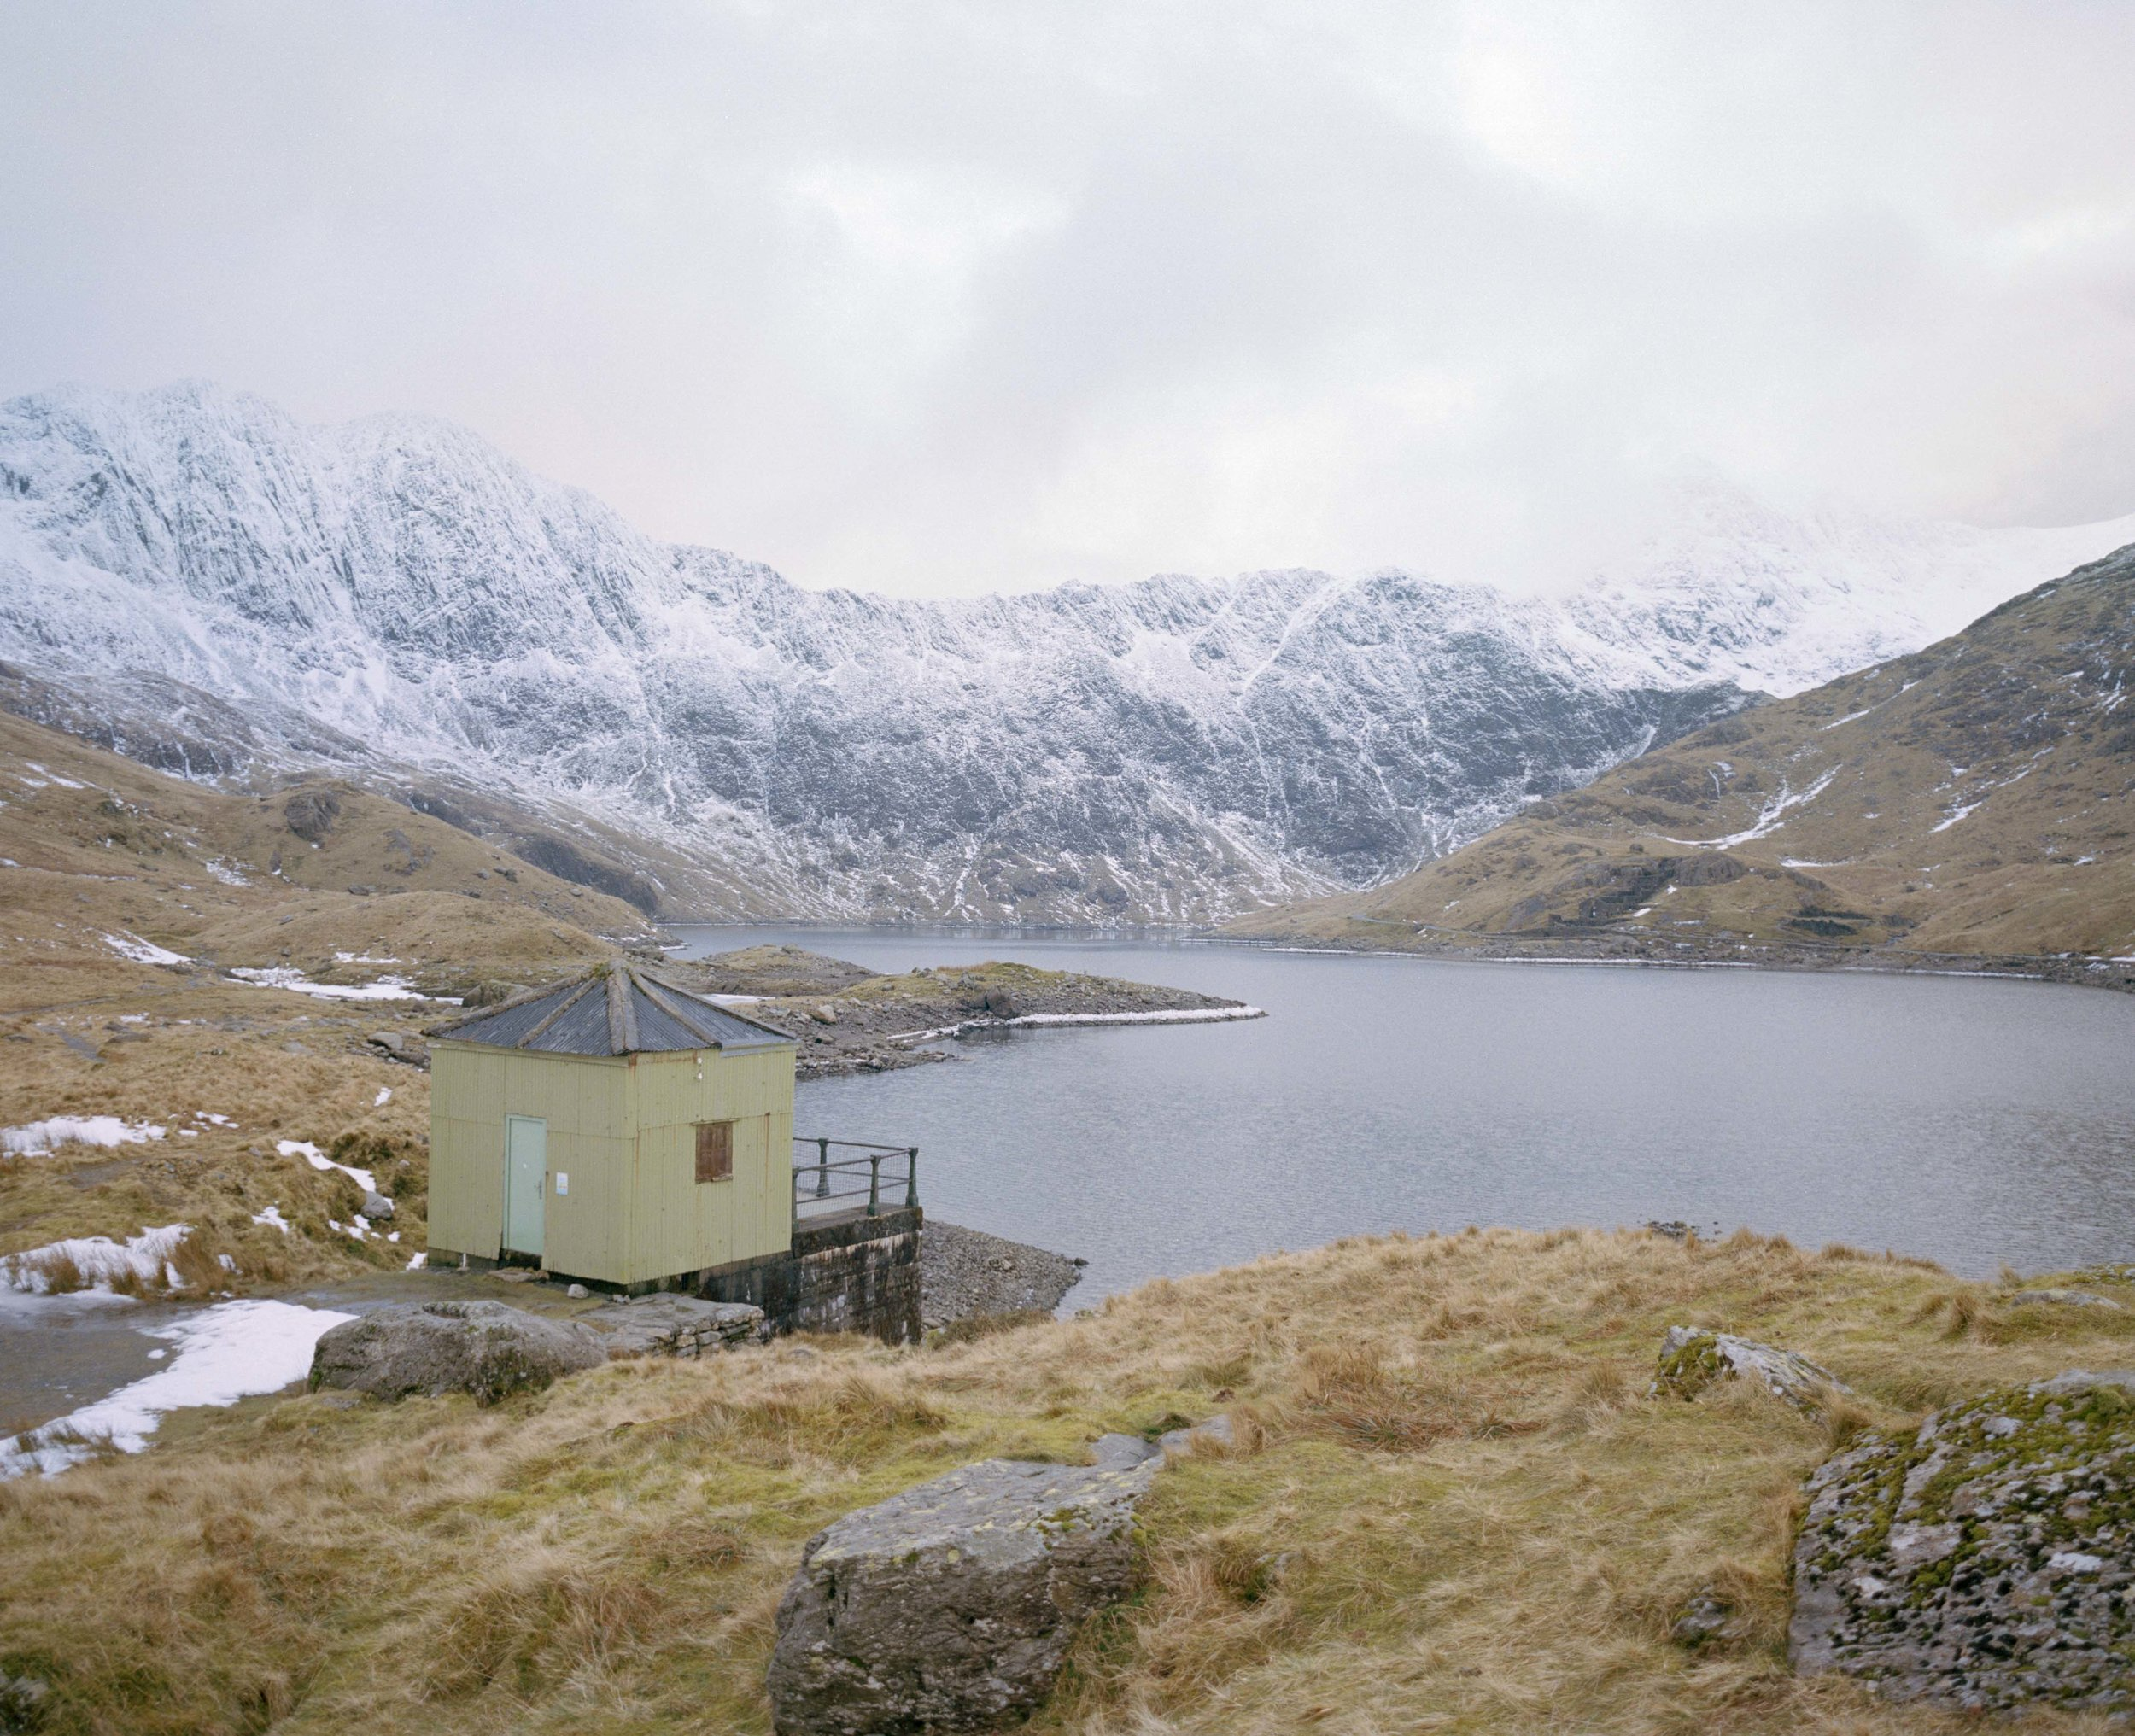 Lake Llydaw - A natural lake, one third of the way up Mt.Snowdon. The water is used to generate electricity via the Cwm Dyli Hydroelectric Power Station situated in the valley below.